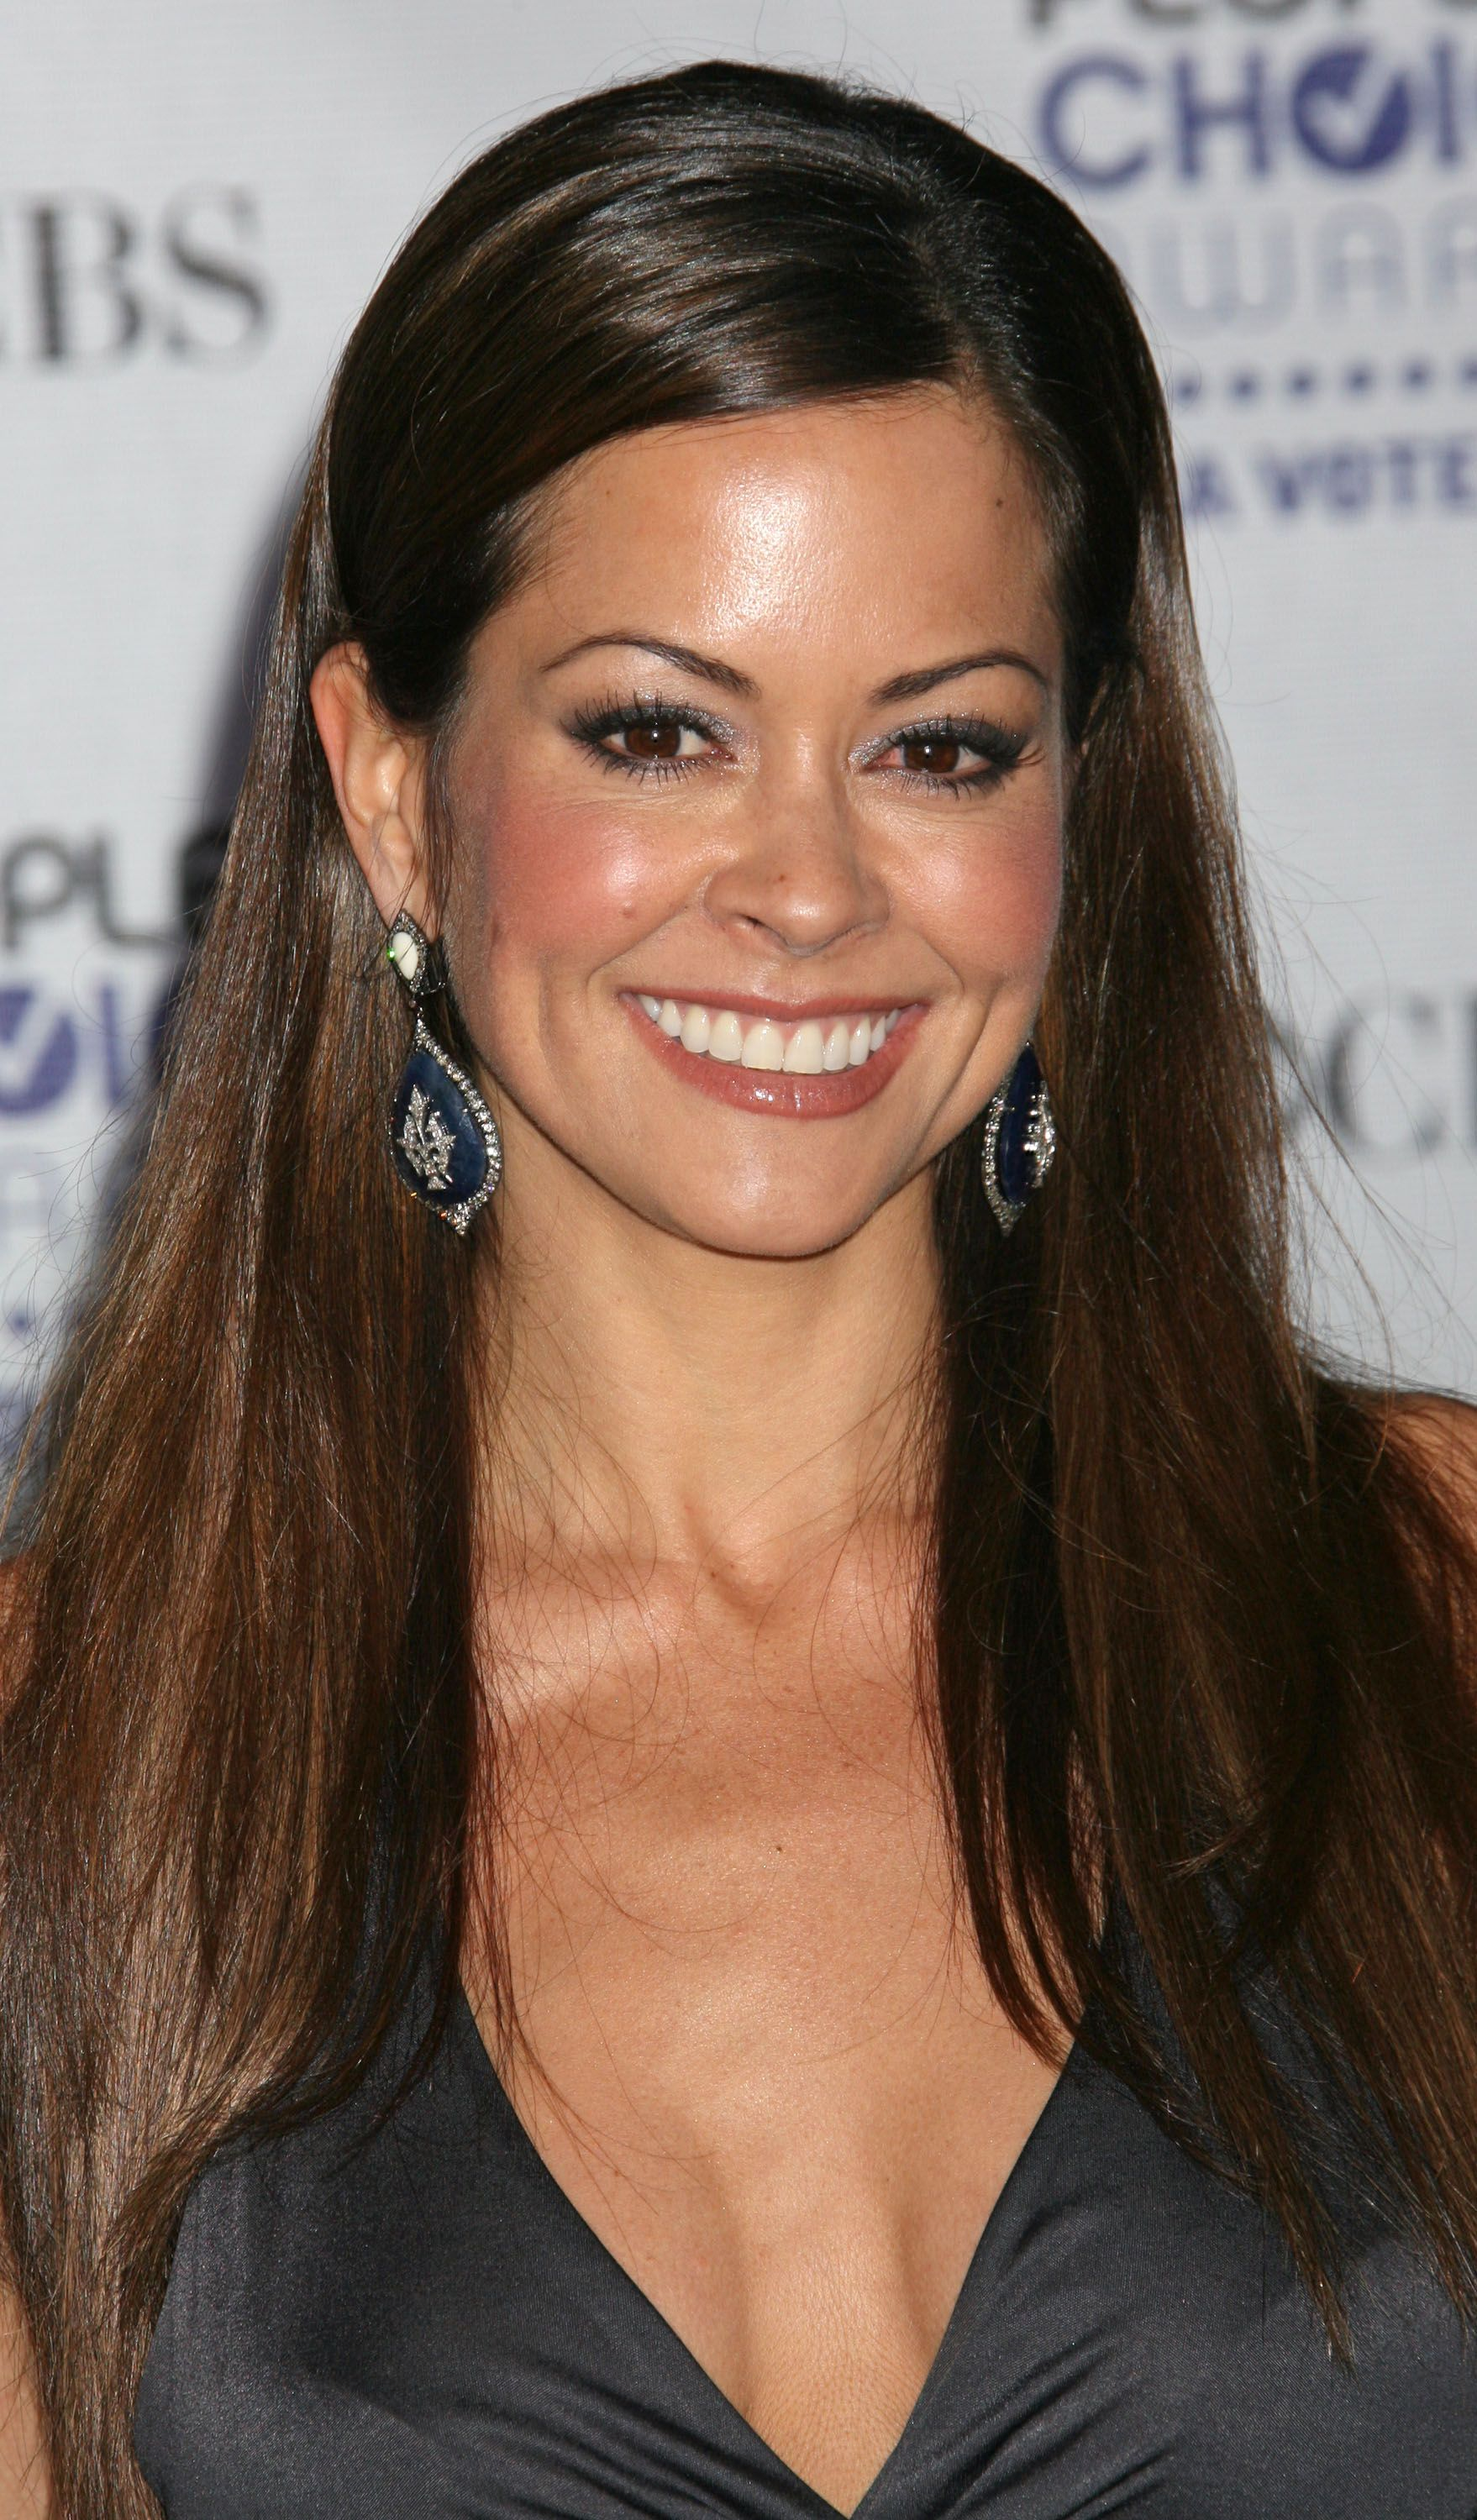 Nude Brooke Burke 64 Pictures Boobs, Twitter-7675